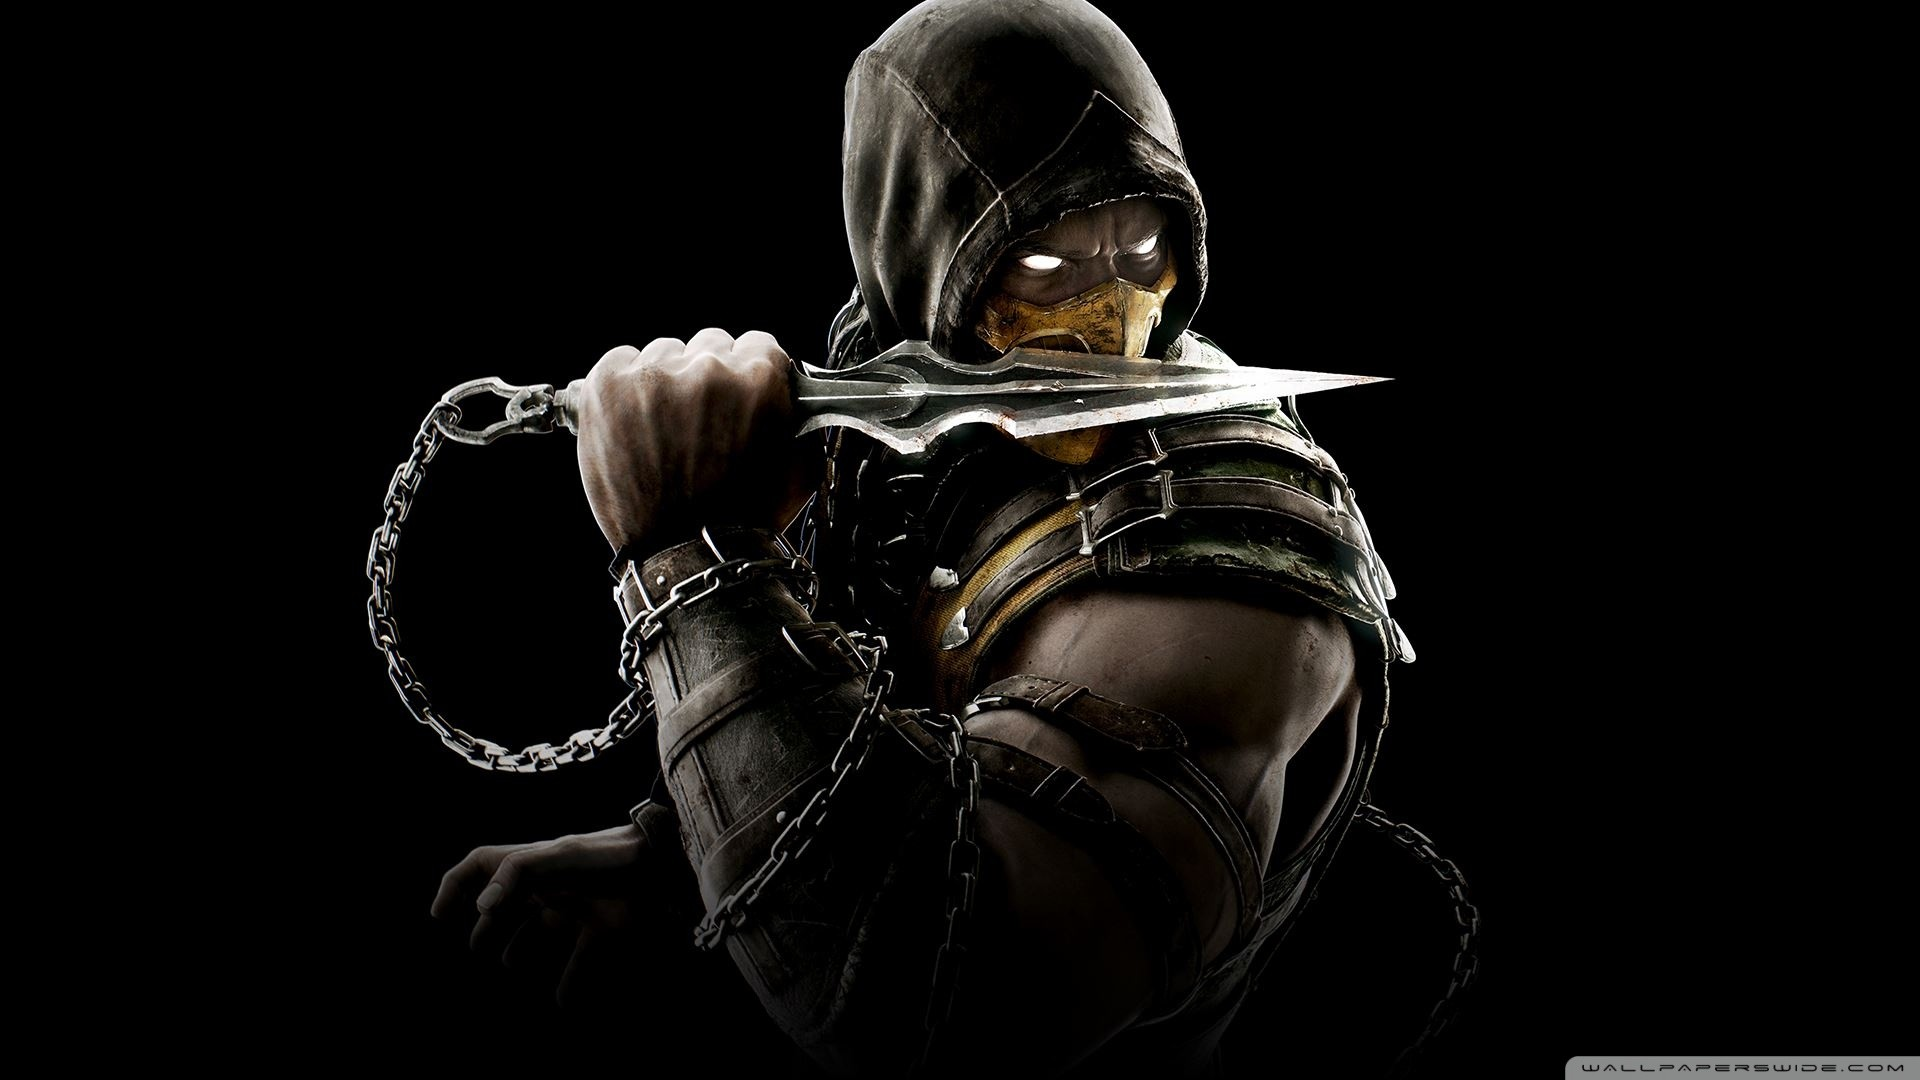 Mortal Kombat Wallpapers Scorpion Wallpapertag